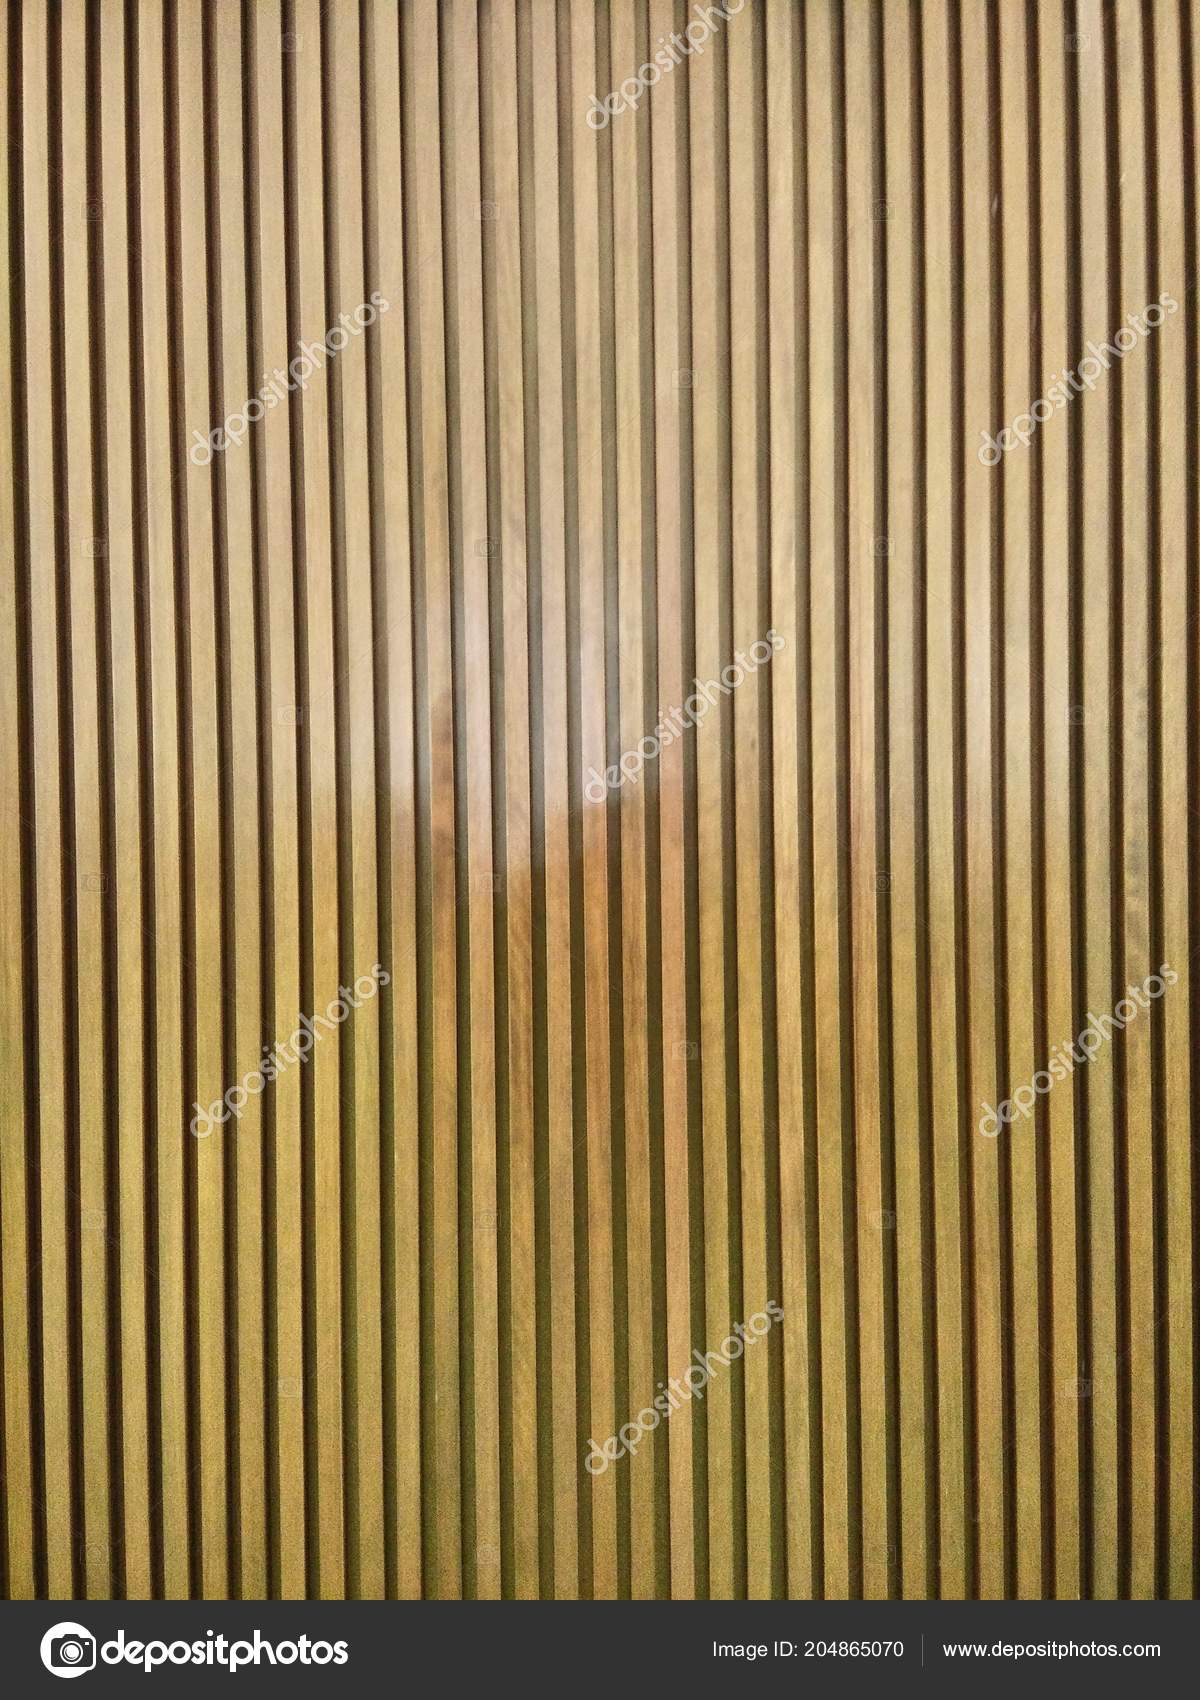 wood stripe material rough texture brown line color image print rh depositphotos com